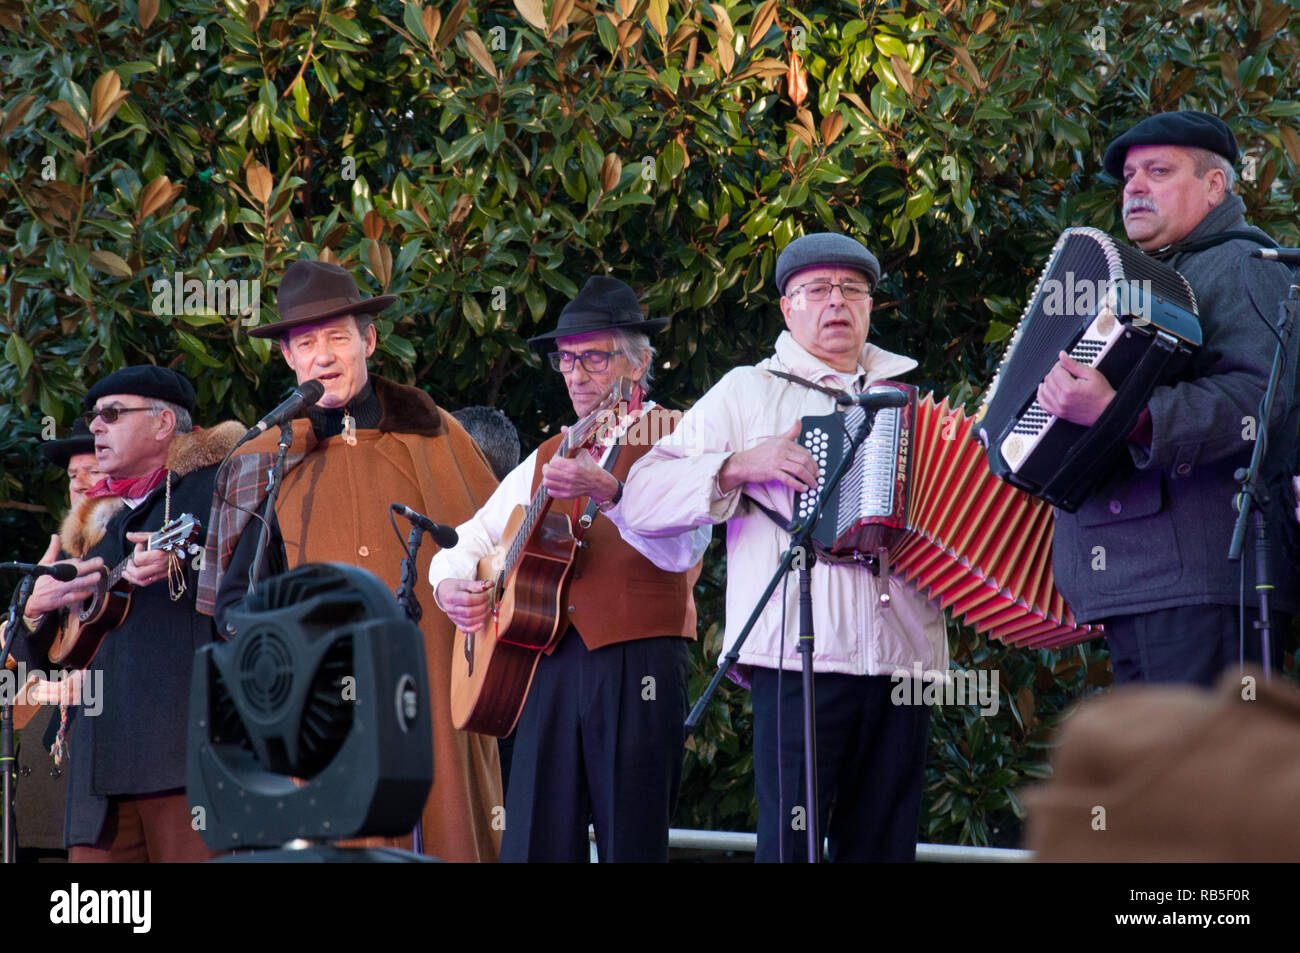 Portuguese folklore group singing As Janeiras in Porto, Portugal Stock Photo